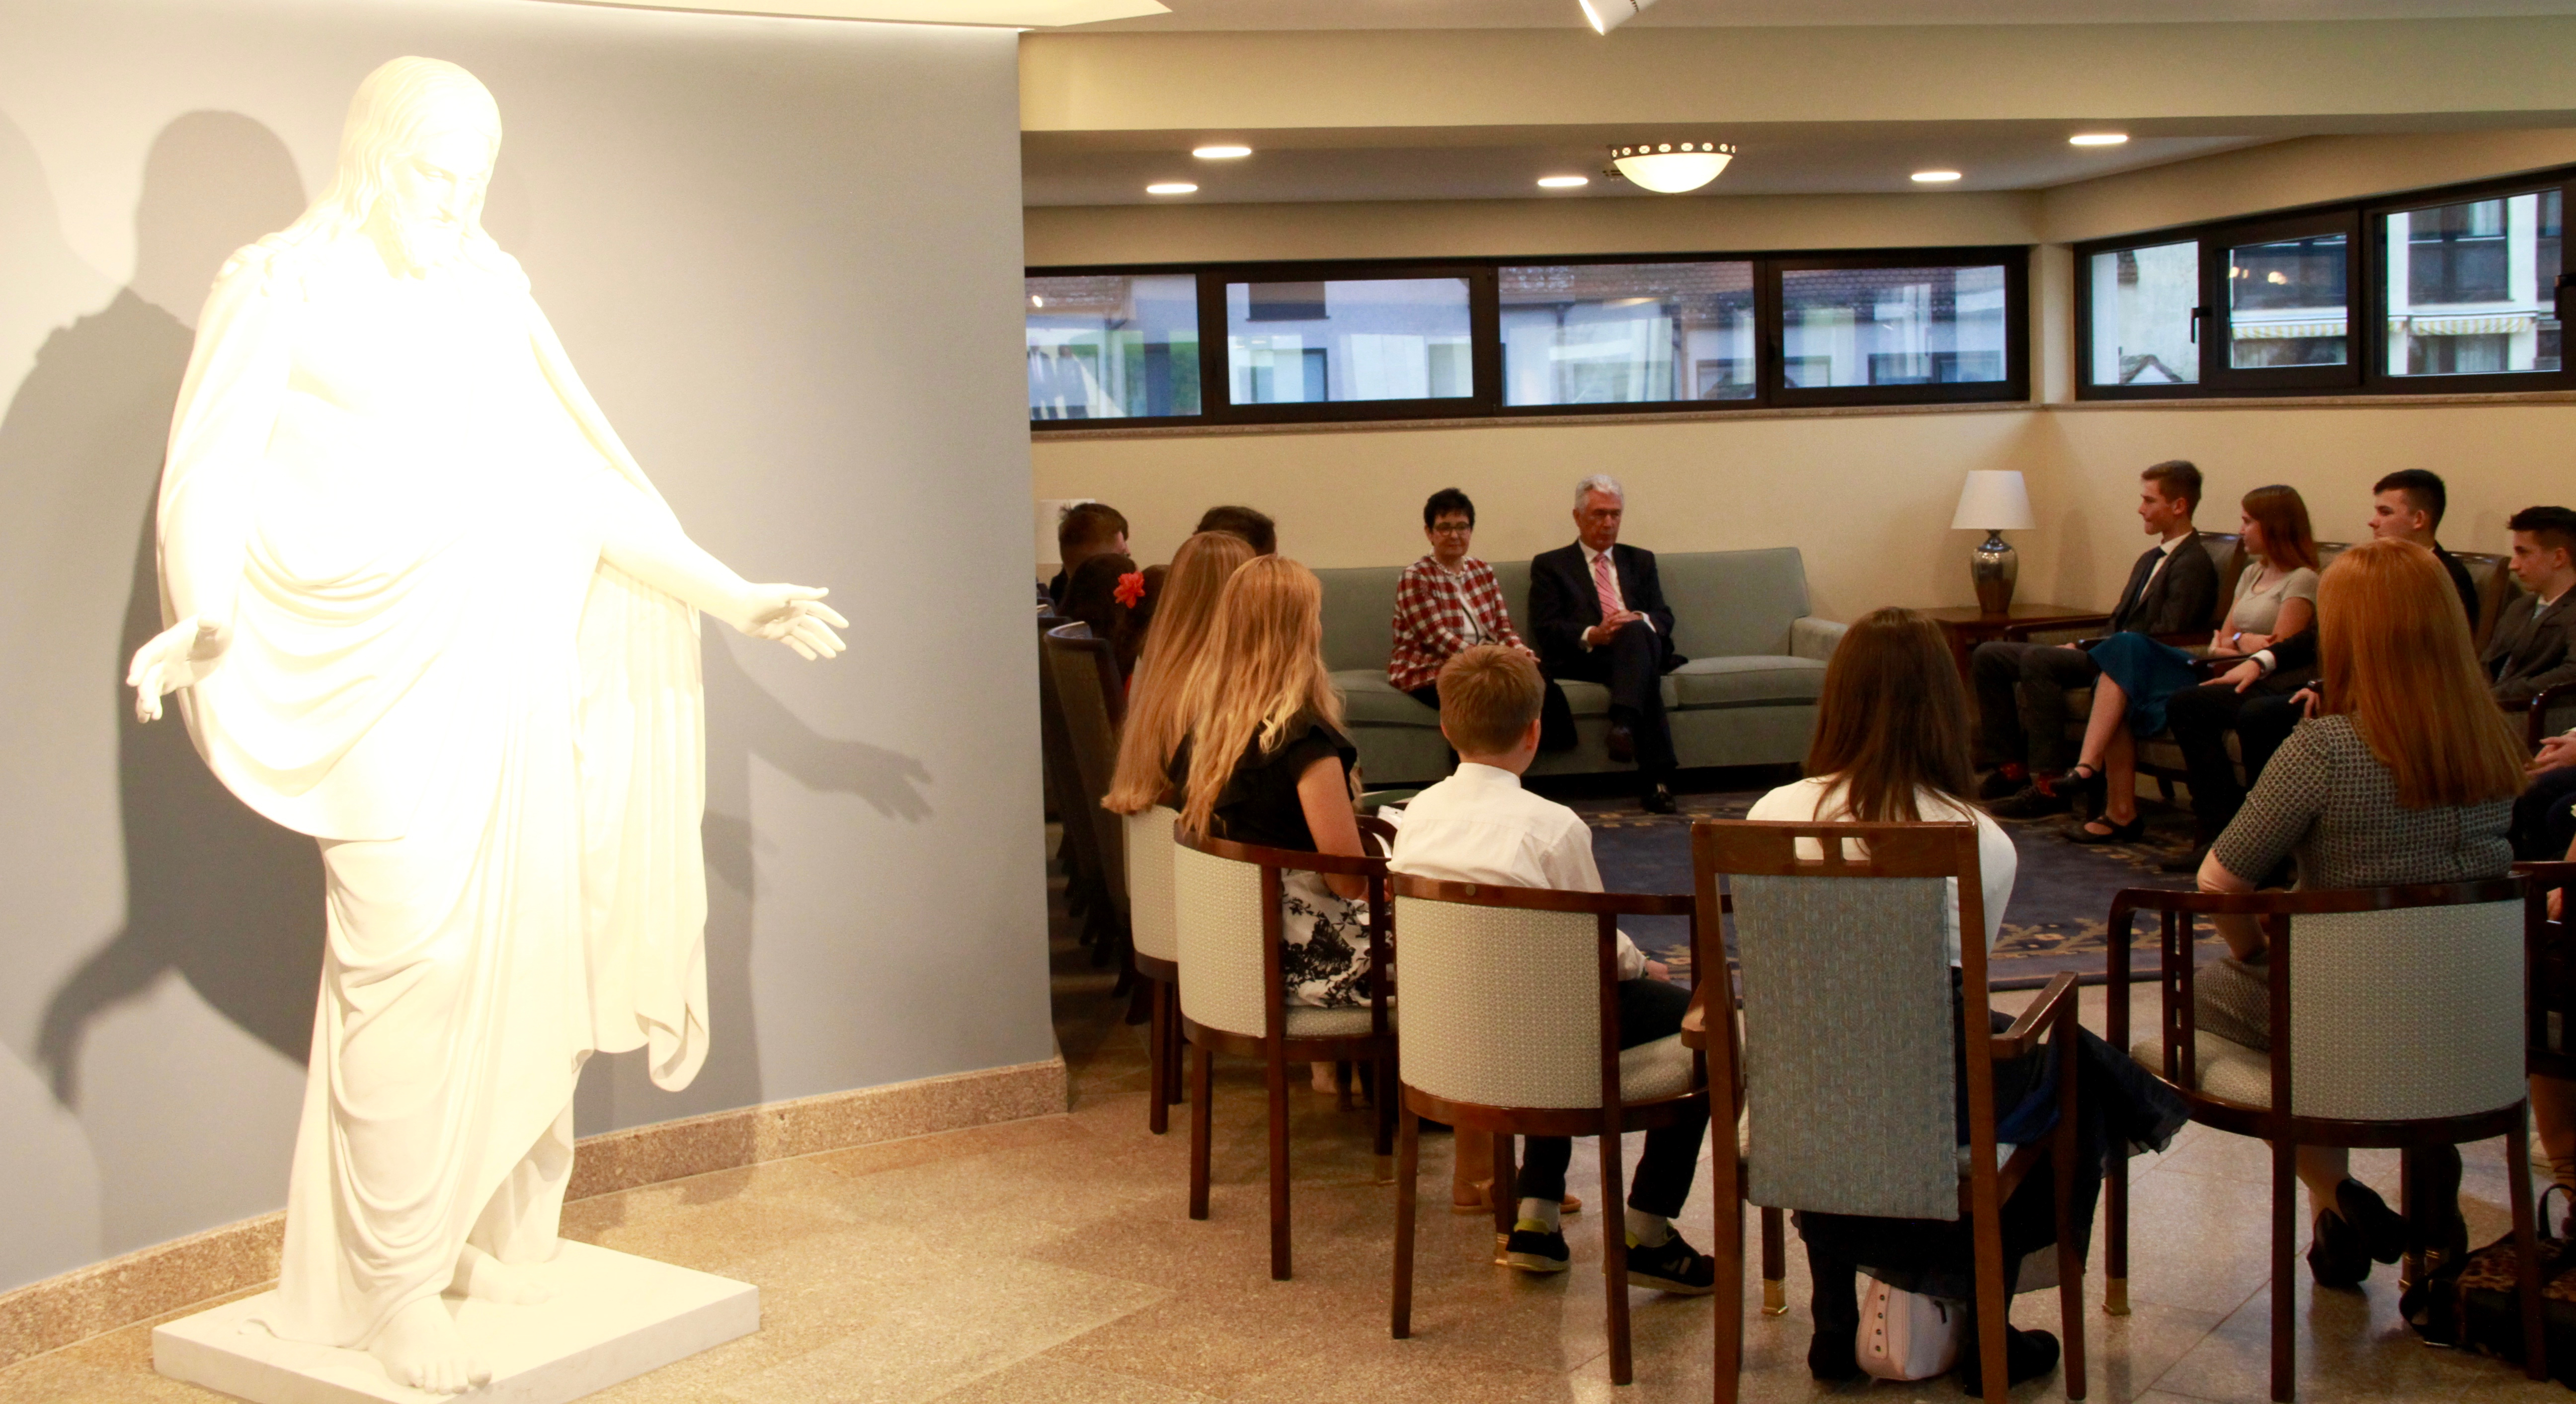 In the Frankfurt temple annex in room next to the Christus statue, Elder Dieter F. Uchtdorf and Sister Harriet Uchtdorf engage a group of youth in a meeting prior to a devotional Saturday, Oct. 19, 2019, in Friedrichsdorf, Germany.